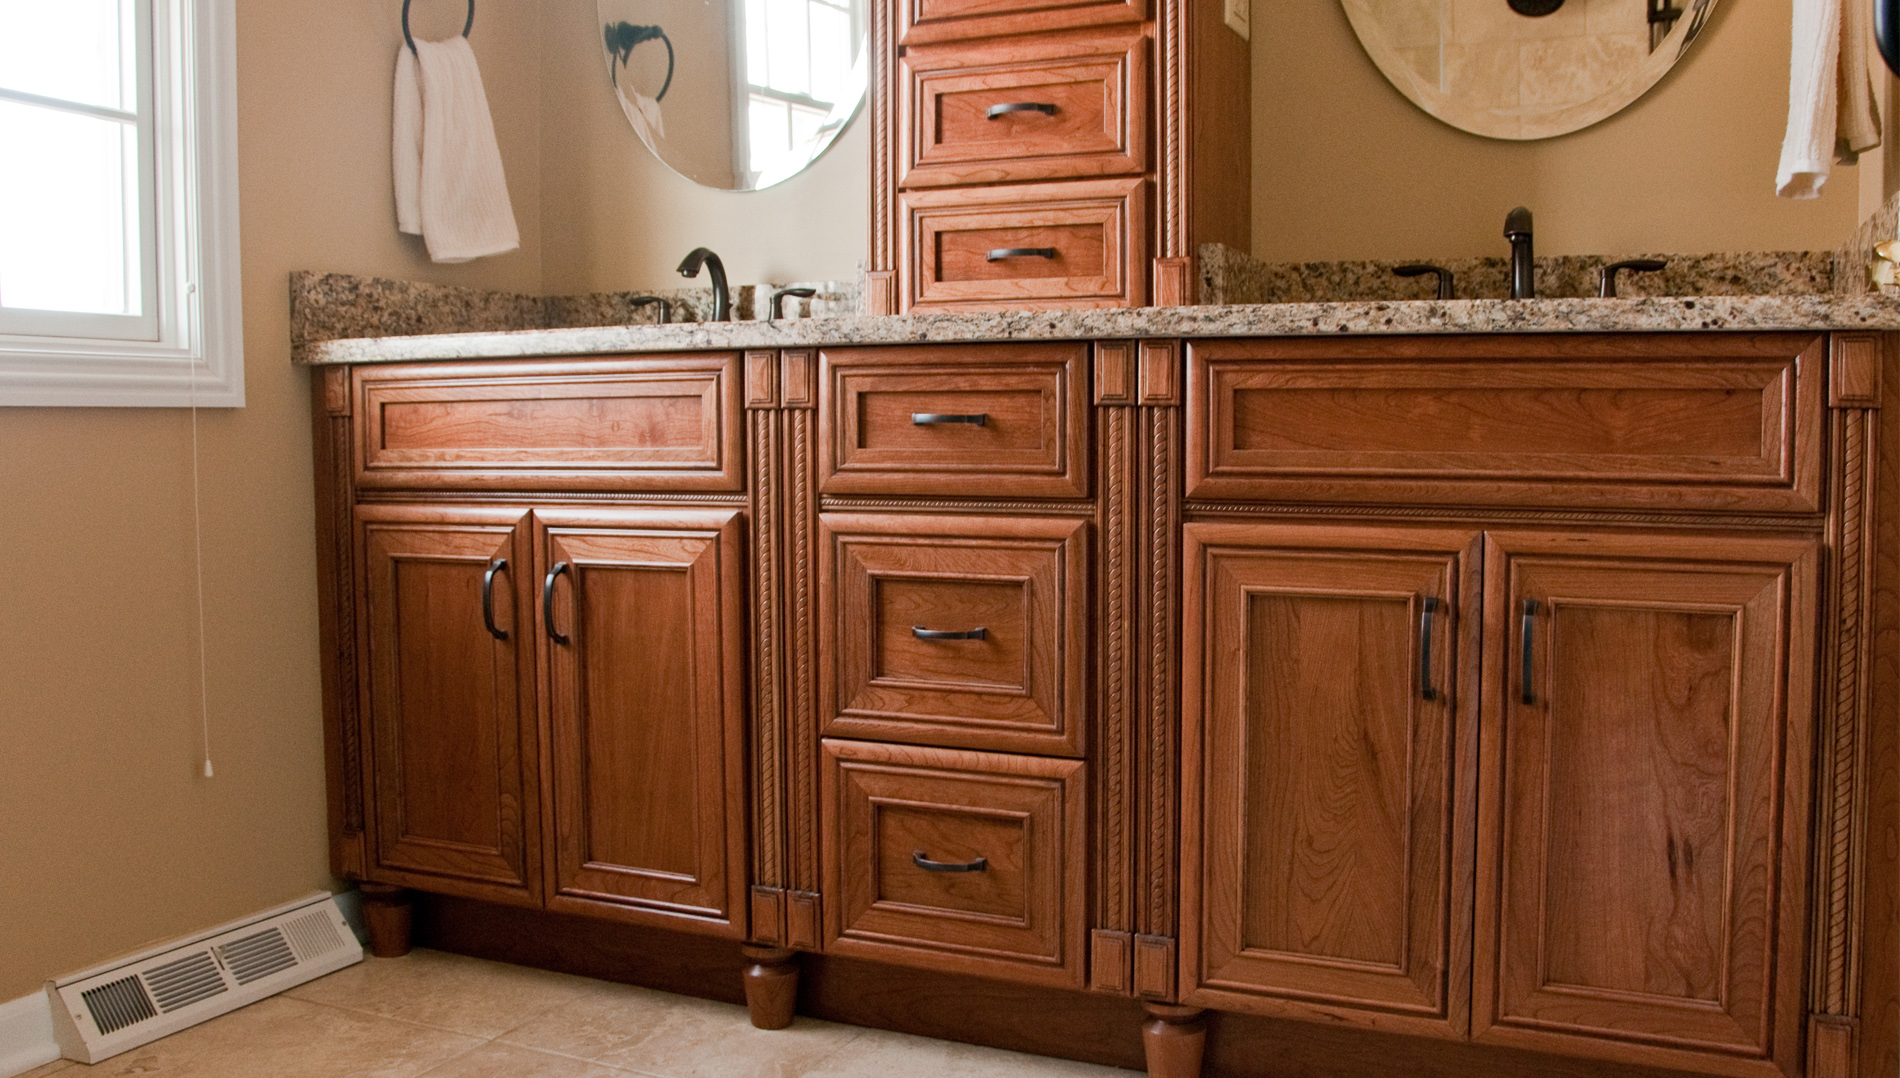 Bathroom Vanities Naperville With Amazing Minimalist In Canada - Bathroom vanities naperville